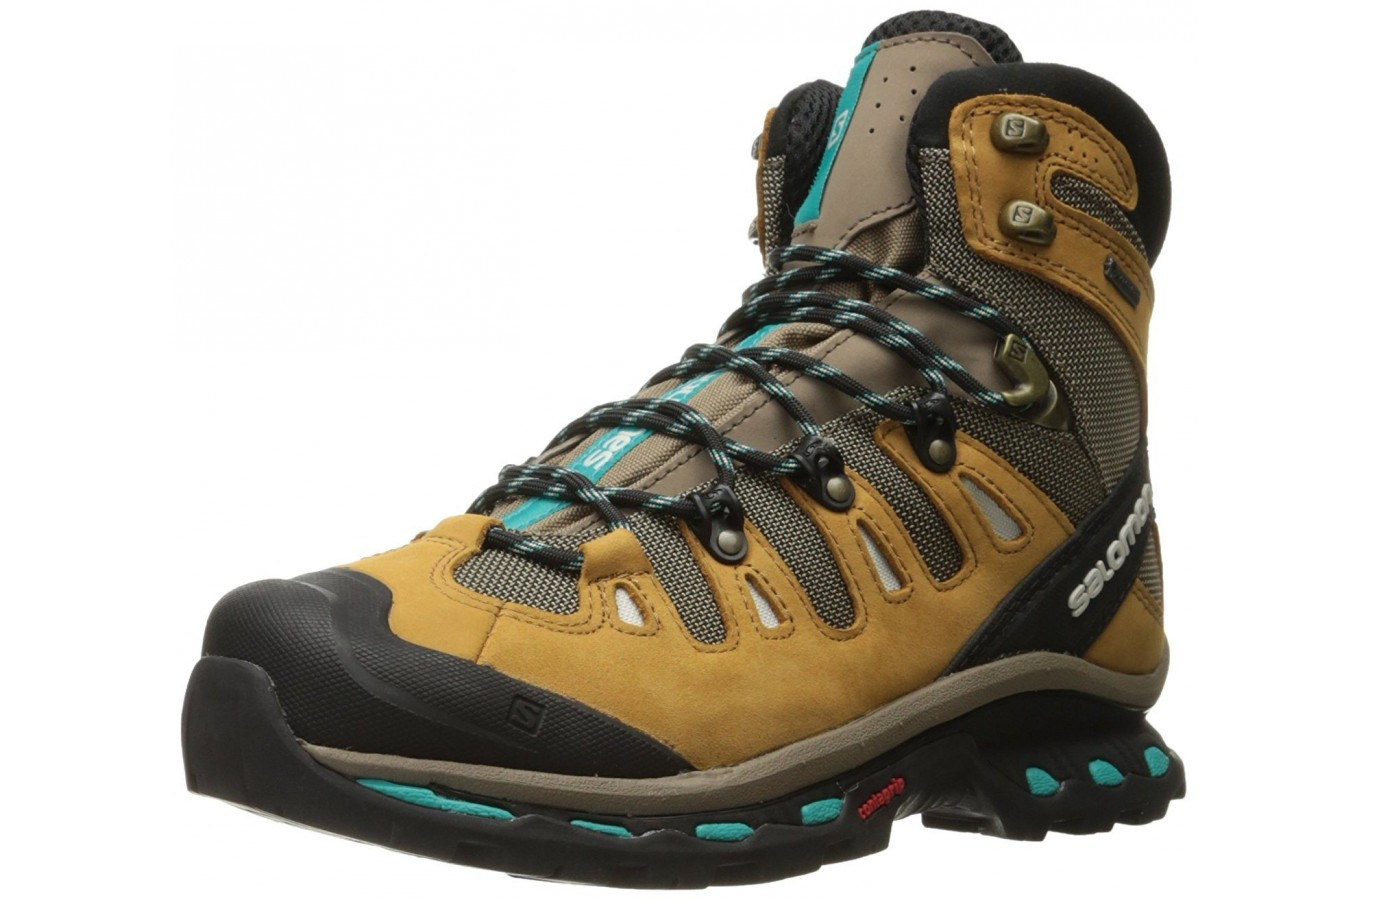 A three quarter view of the Salomon Quest 4D 2 GTX hiking boot